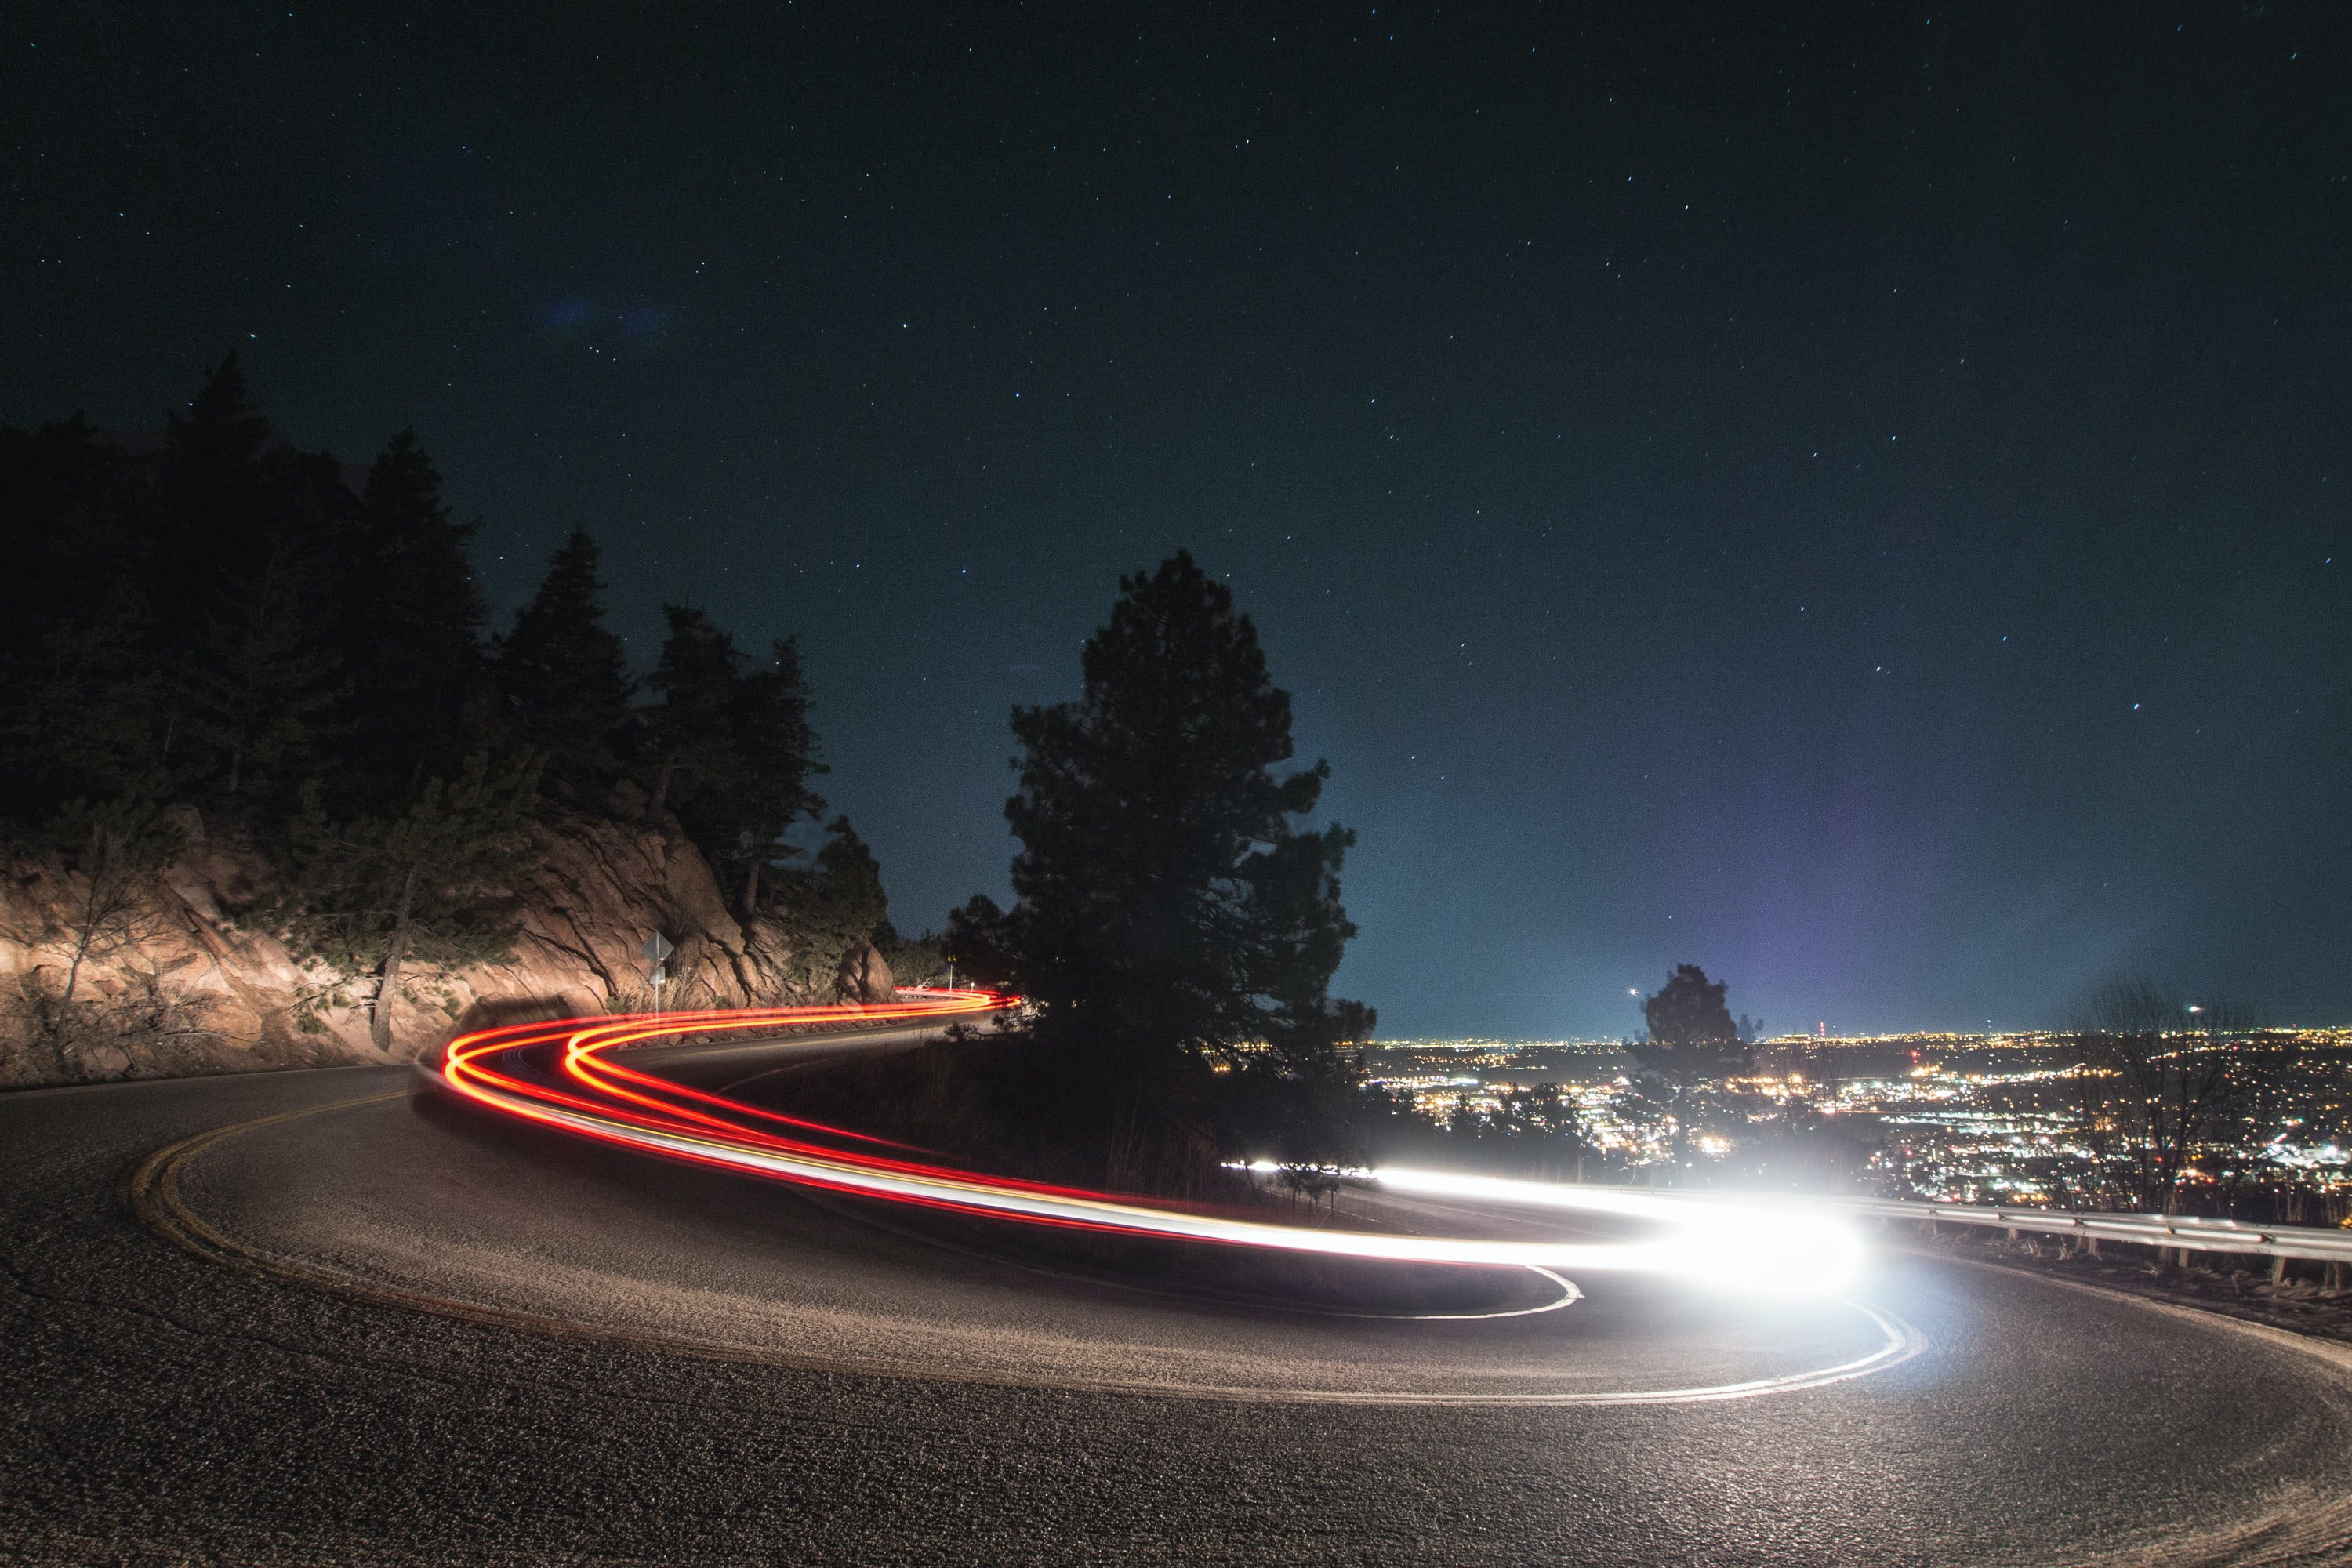 A slow shutter shot of a curved road in Boulder, with fast-driving car light trails